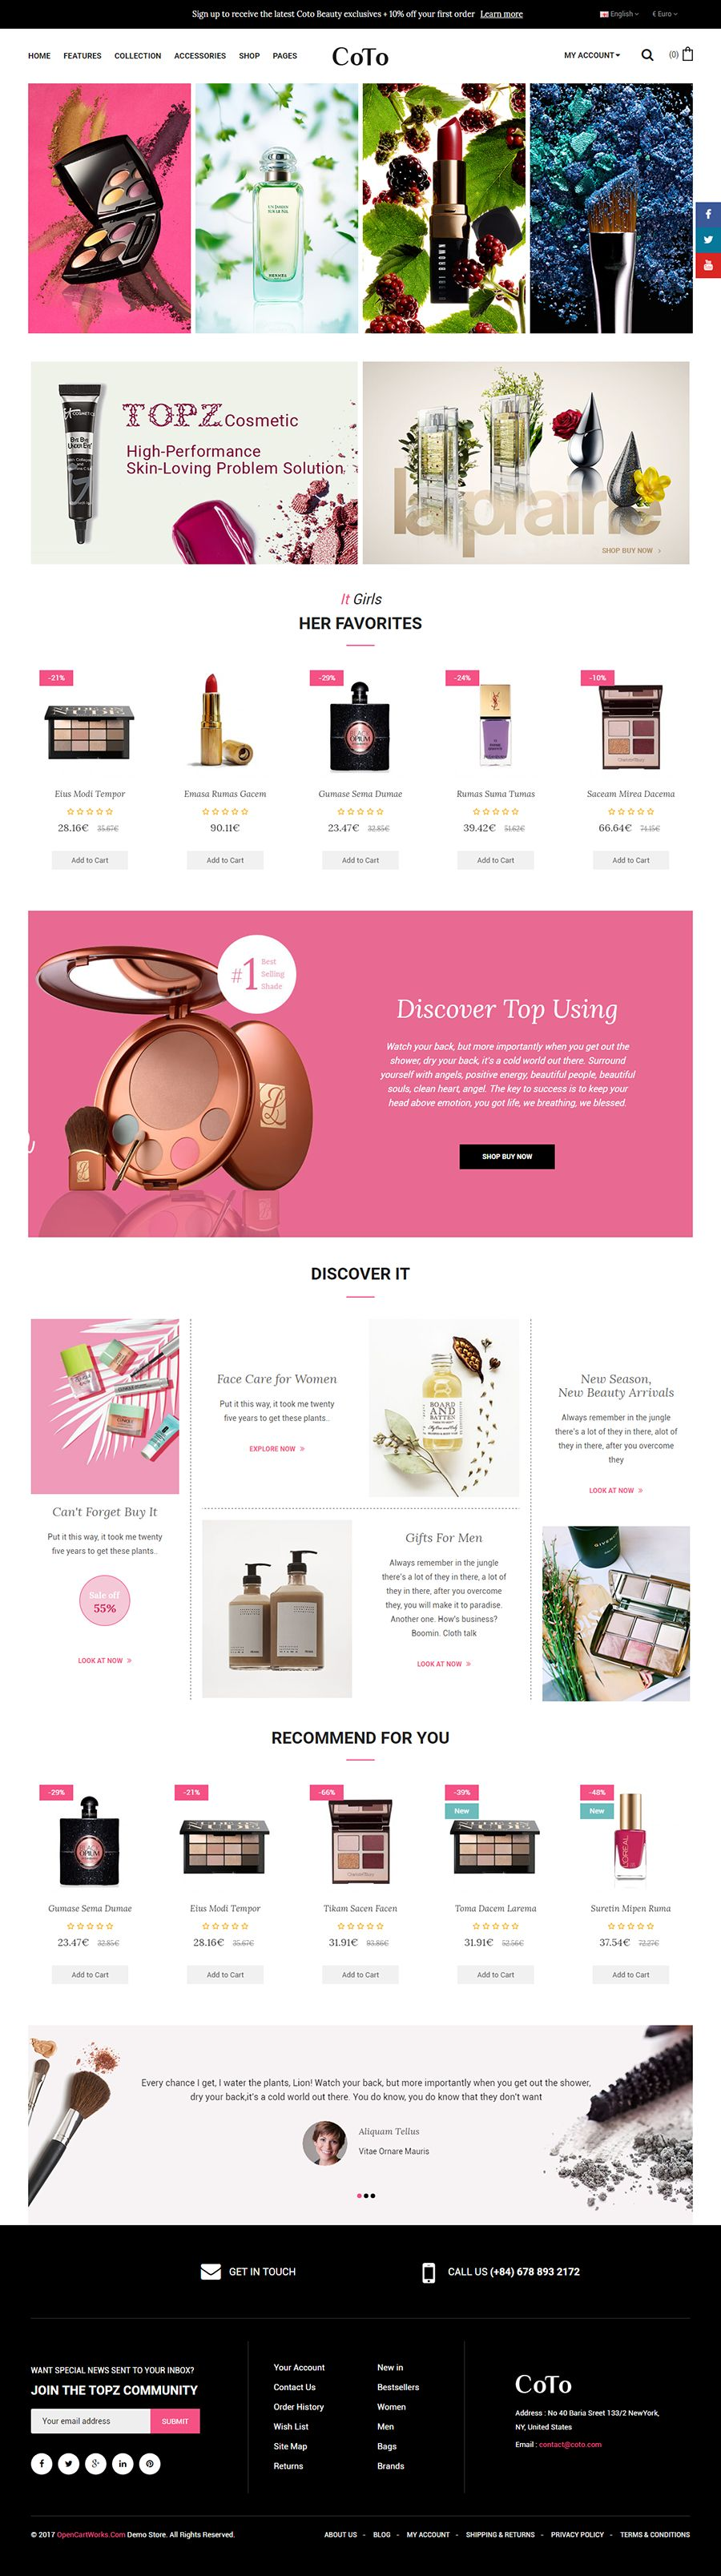 Coto - The Cosmetic eCommerce OpenCart Theme Screenshot 2